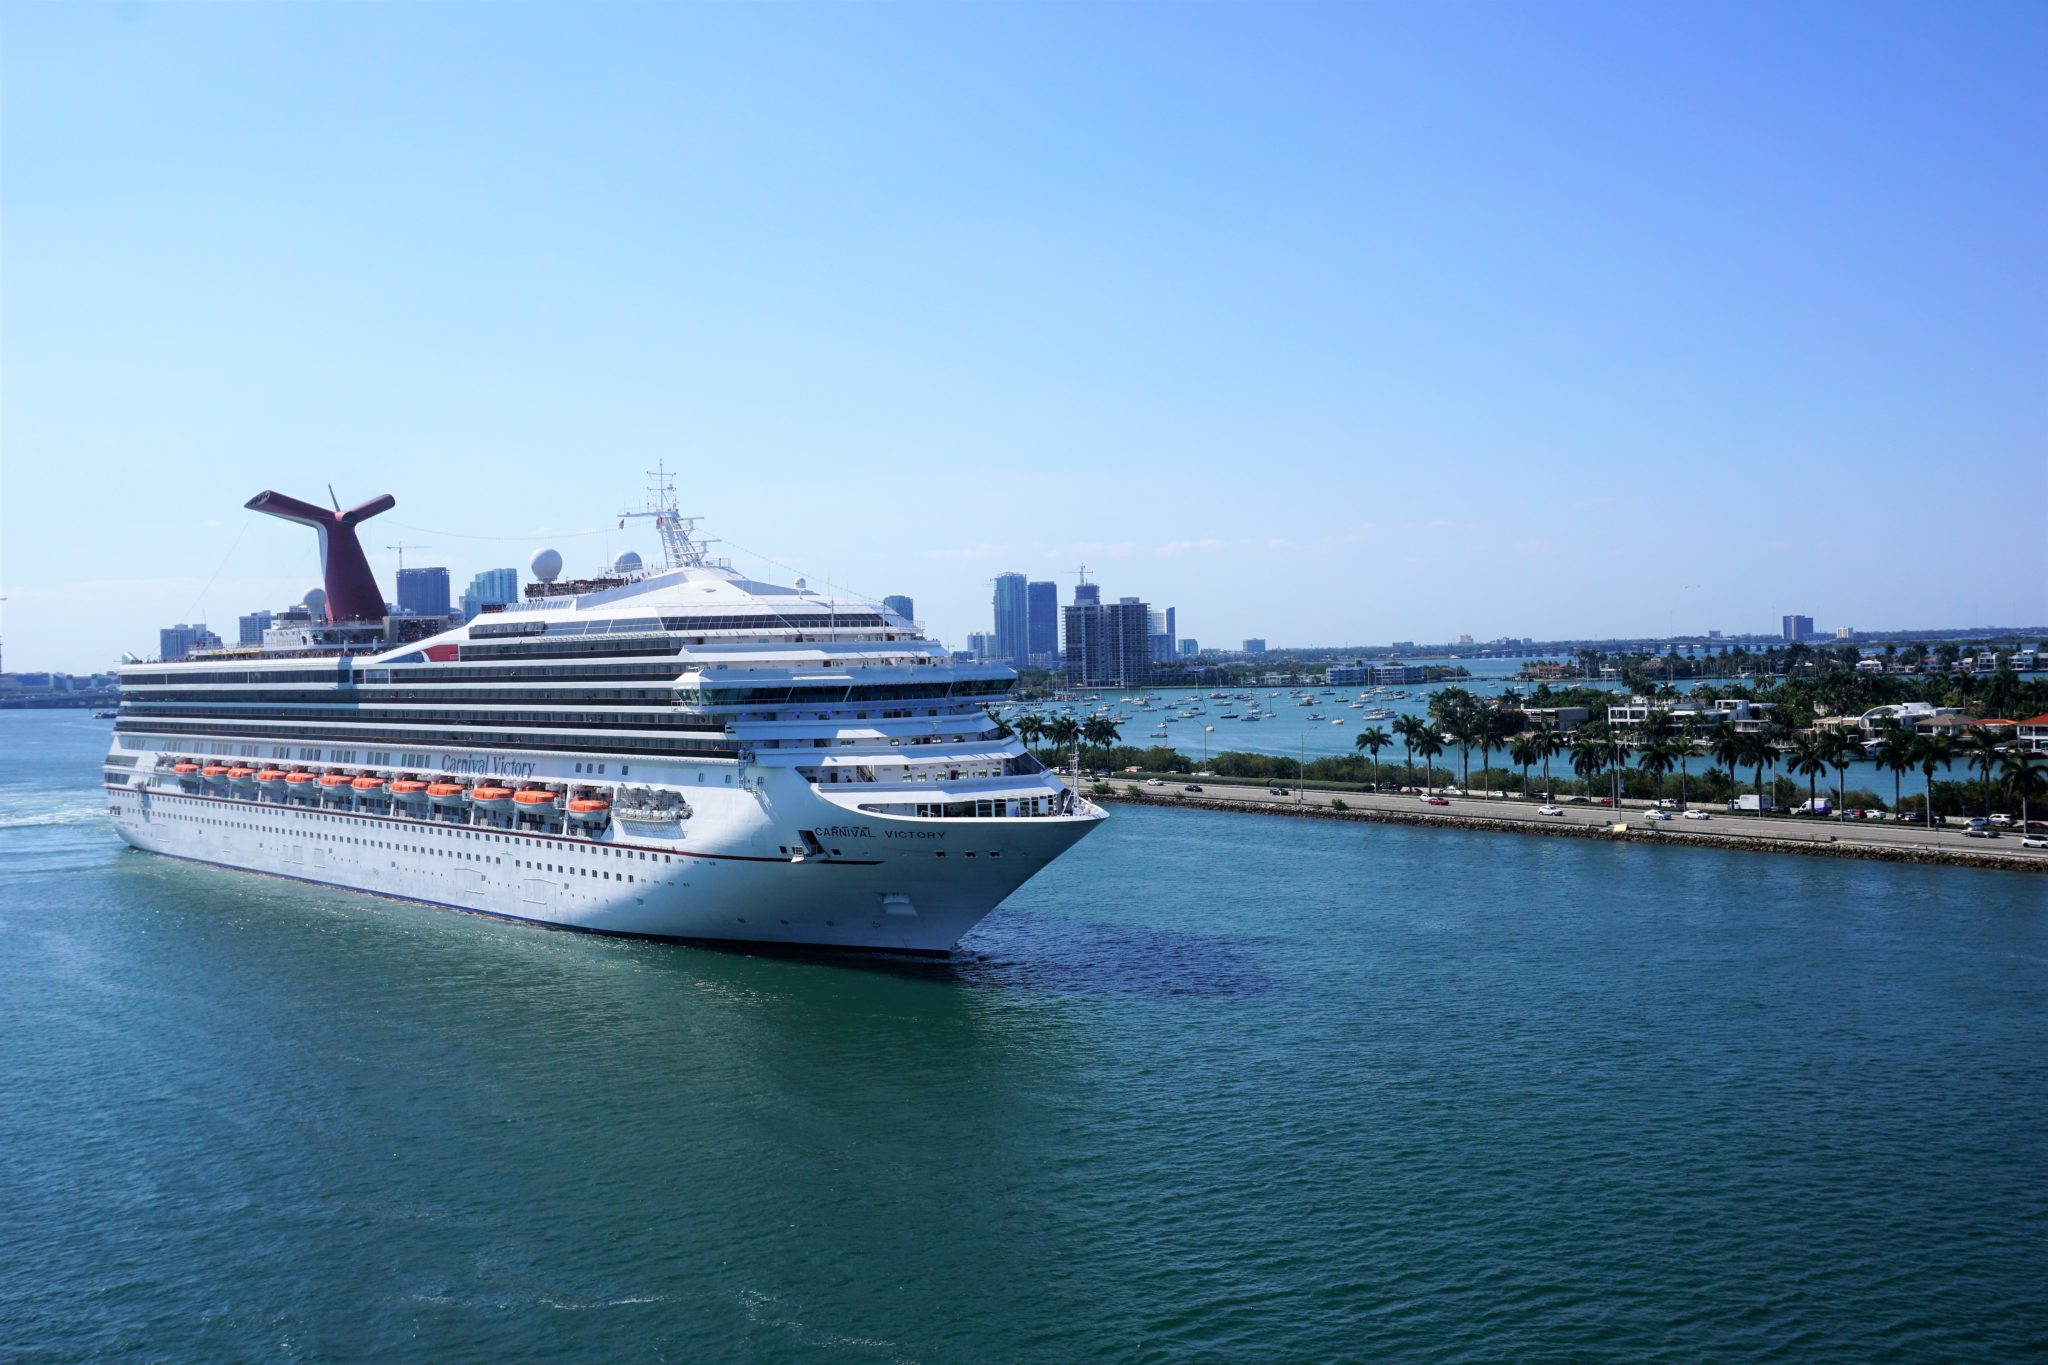 when cruise lines are expected to resume service